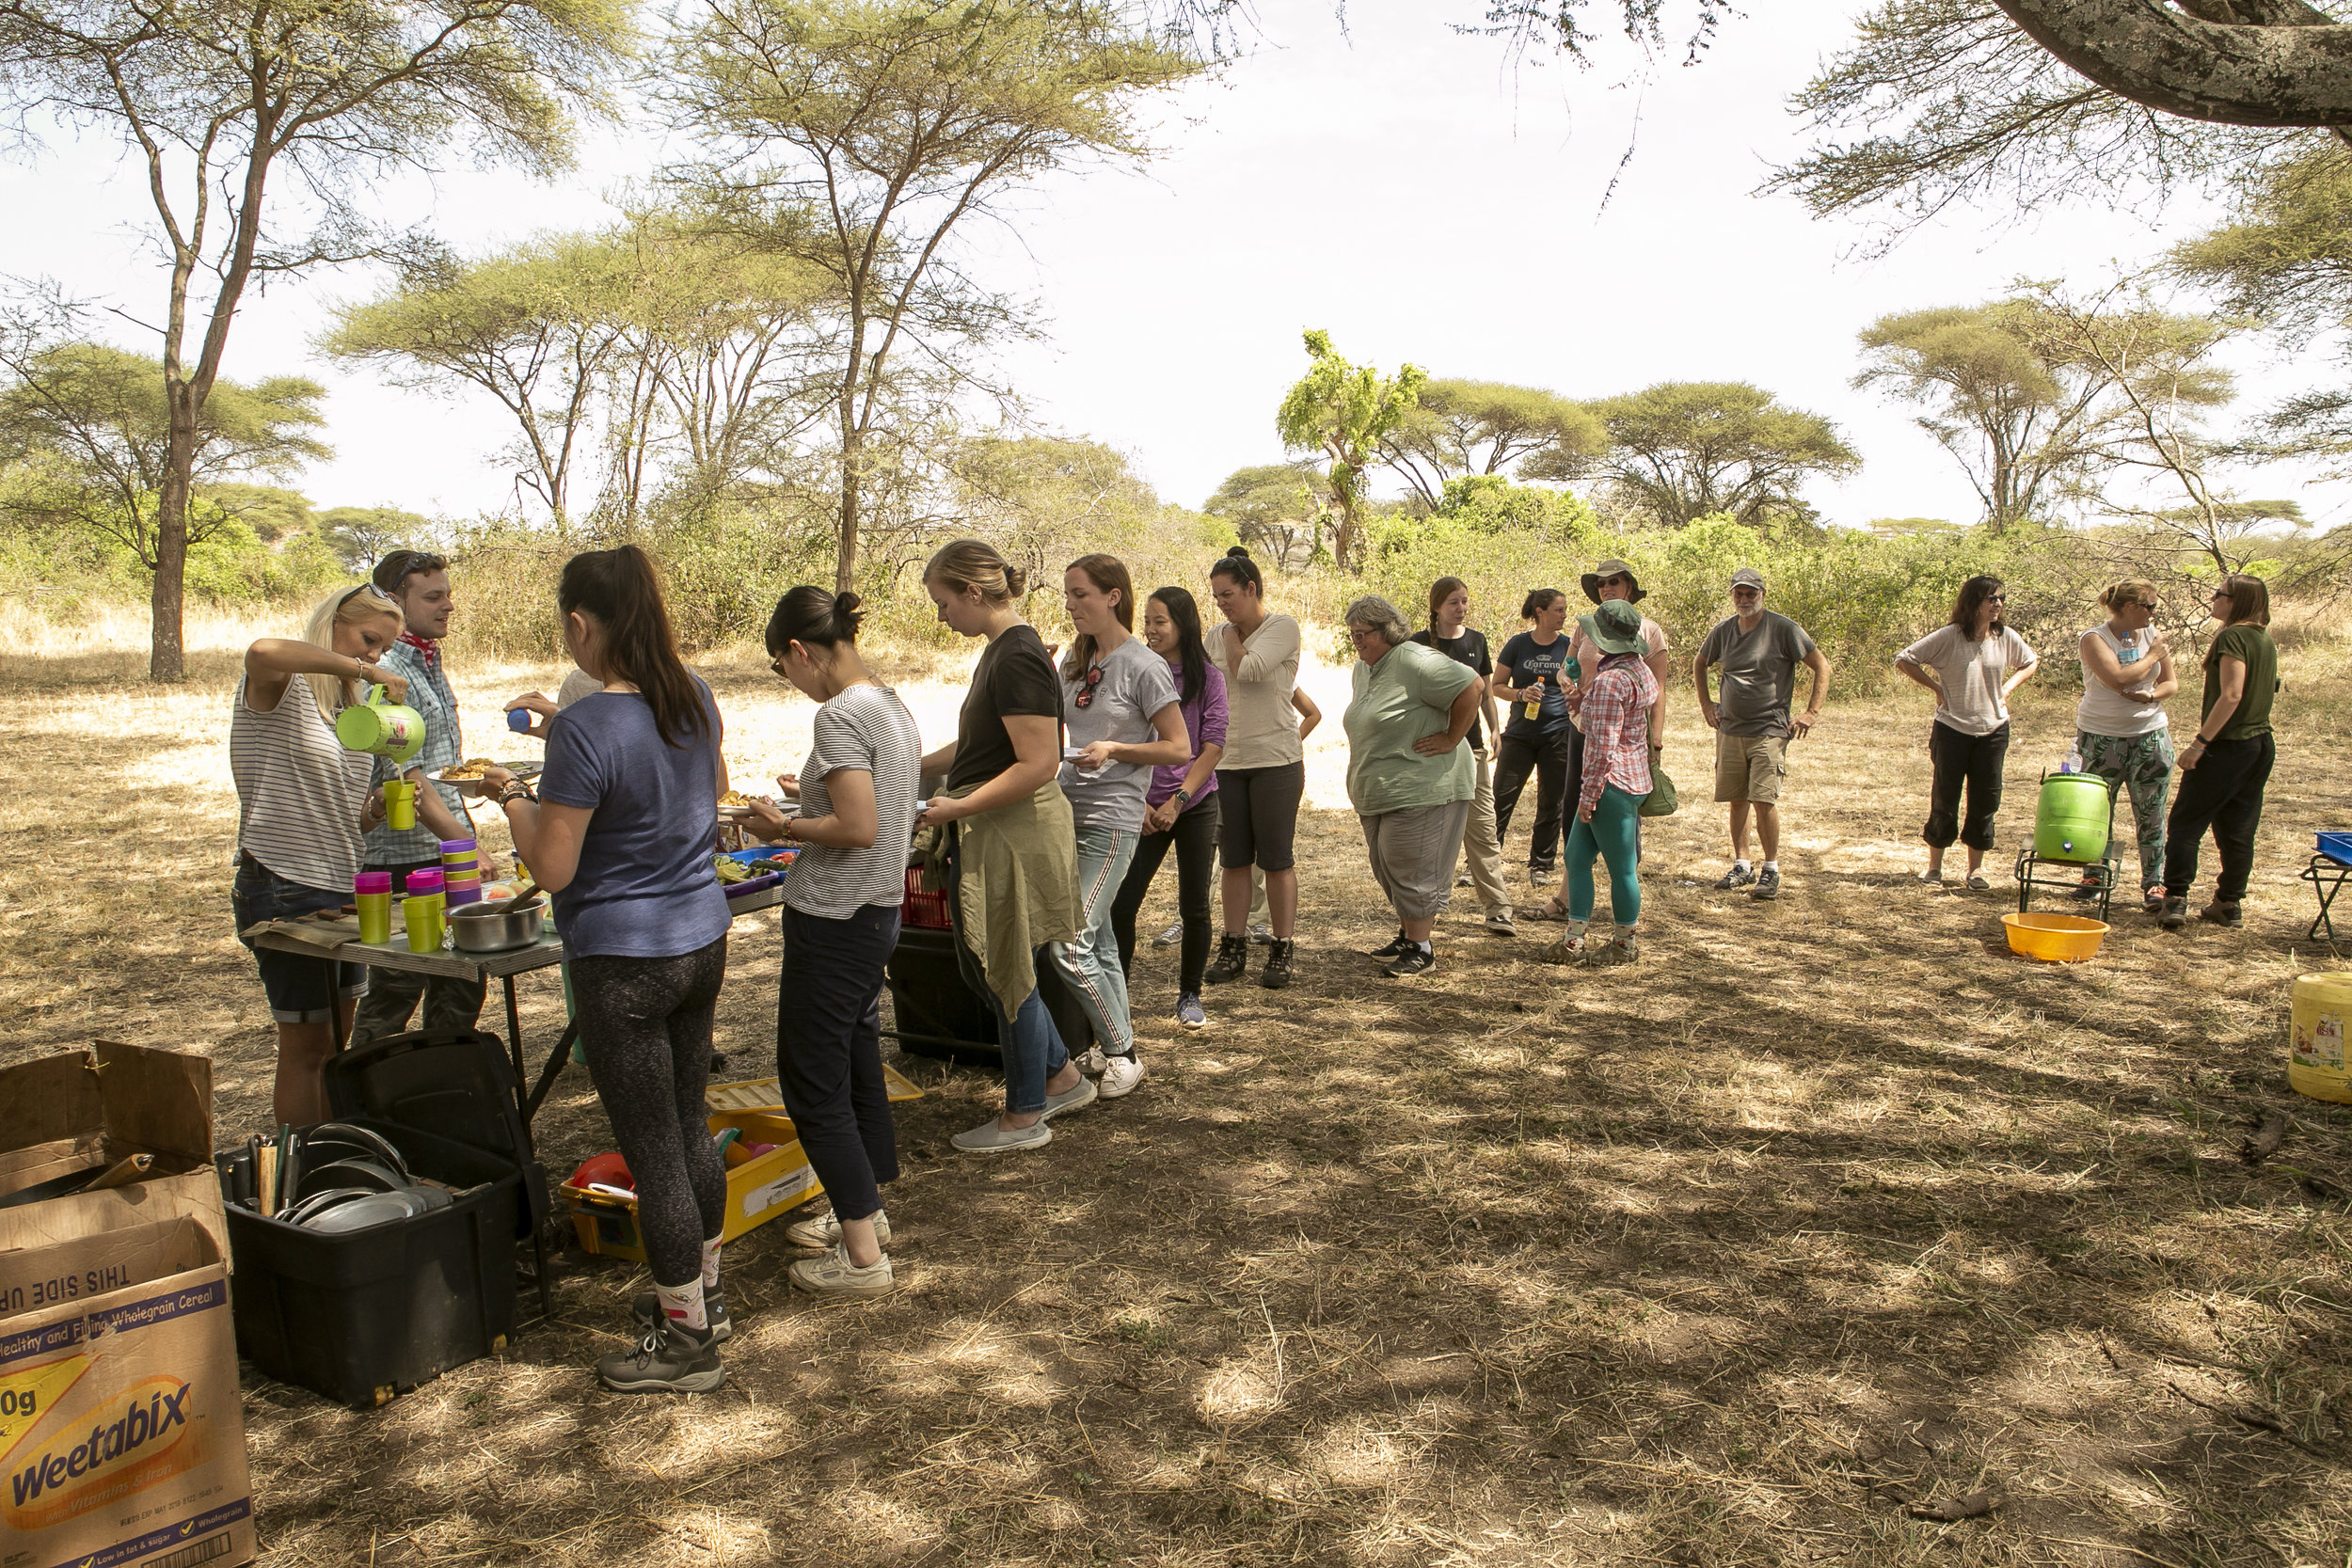 African Adventure - 28 July '18 - Musoma, Tanzania to Serengeti National Park - 012.JPG